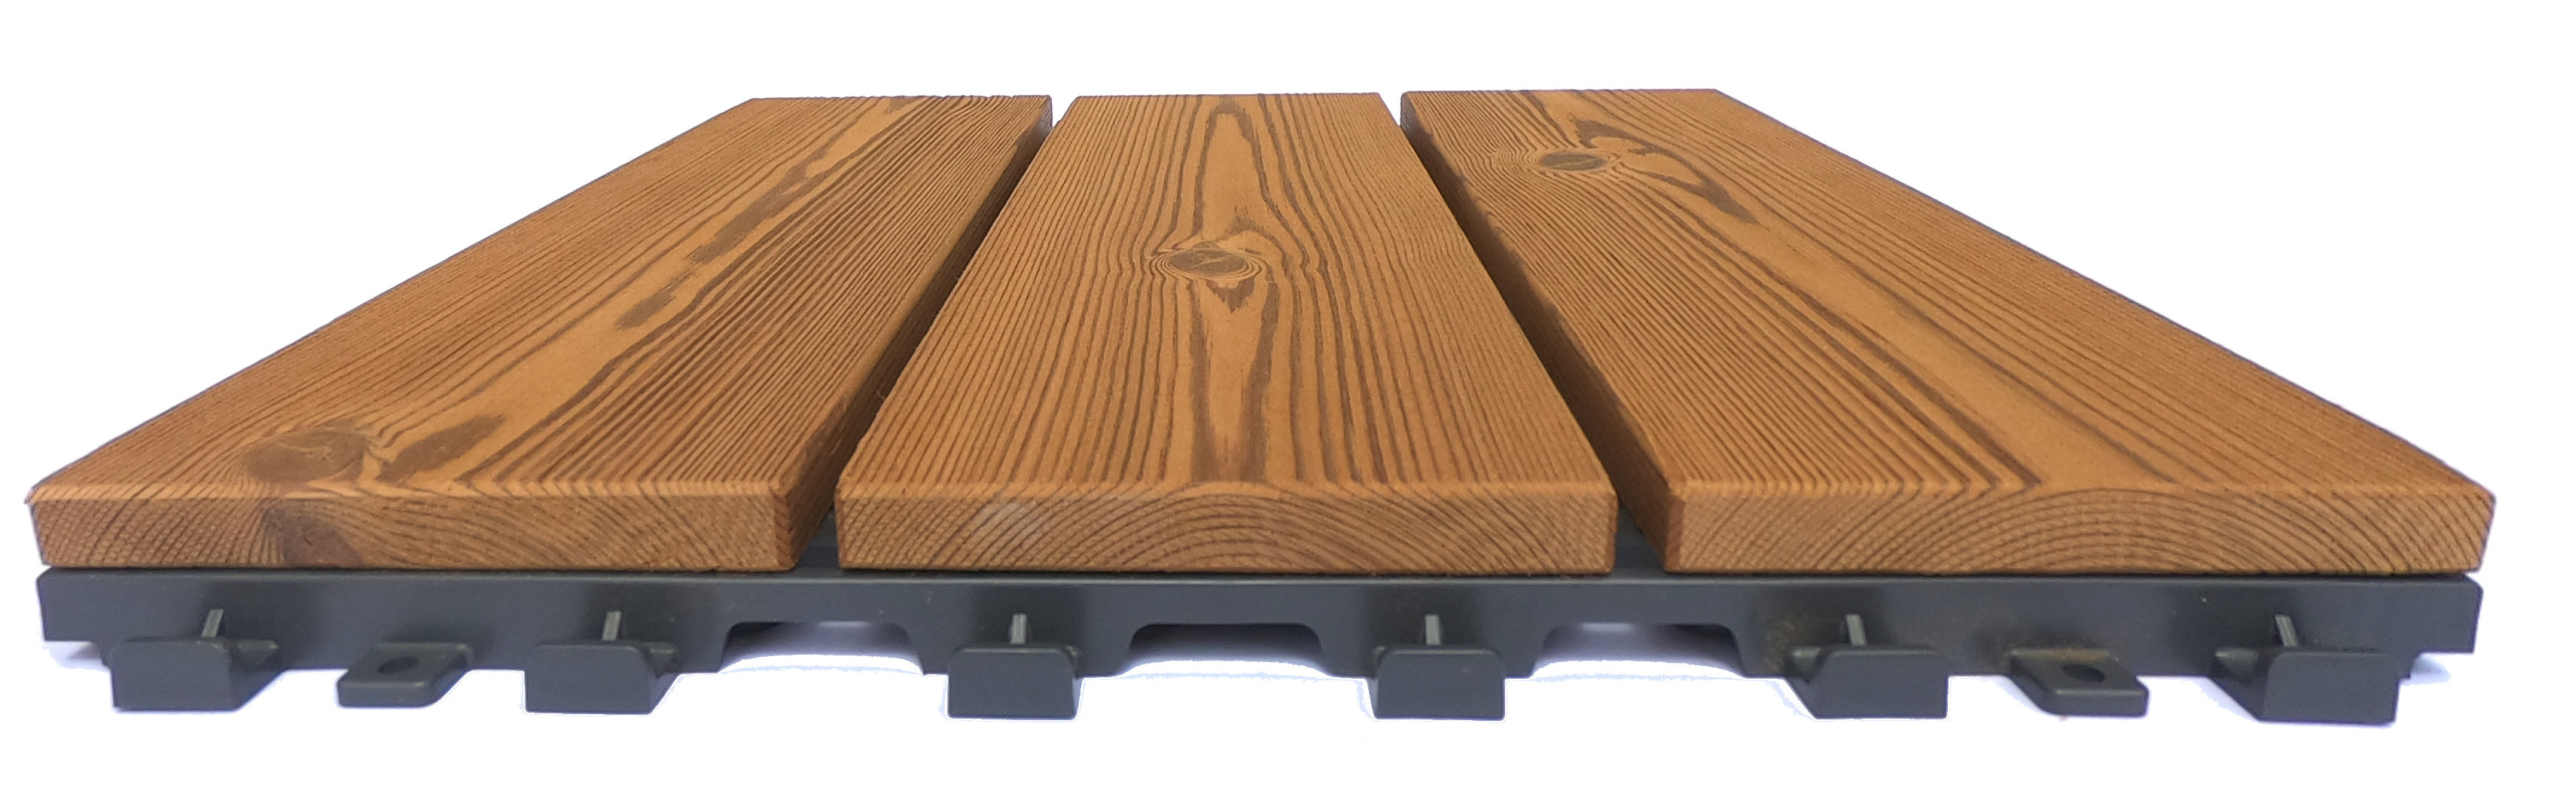 Smartdeck modular tile for outdoor flooring in thermowood pine 3